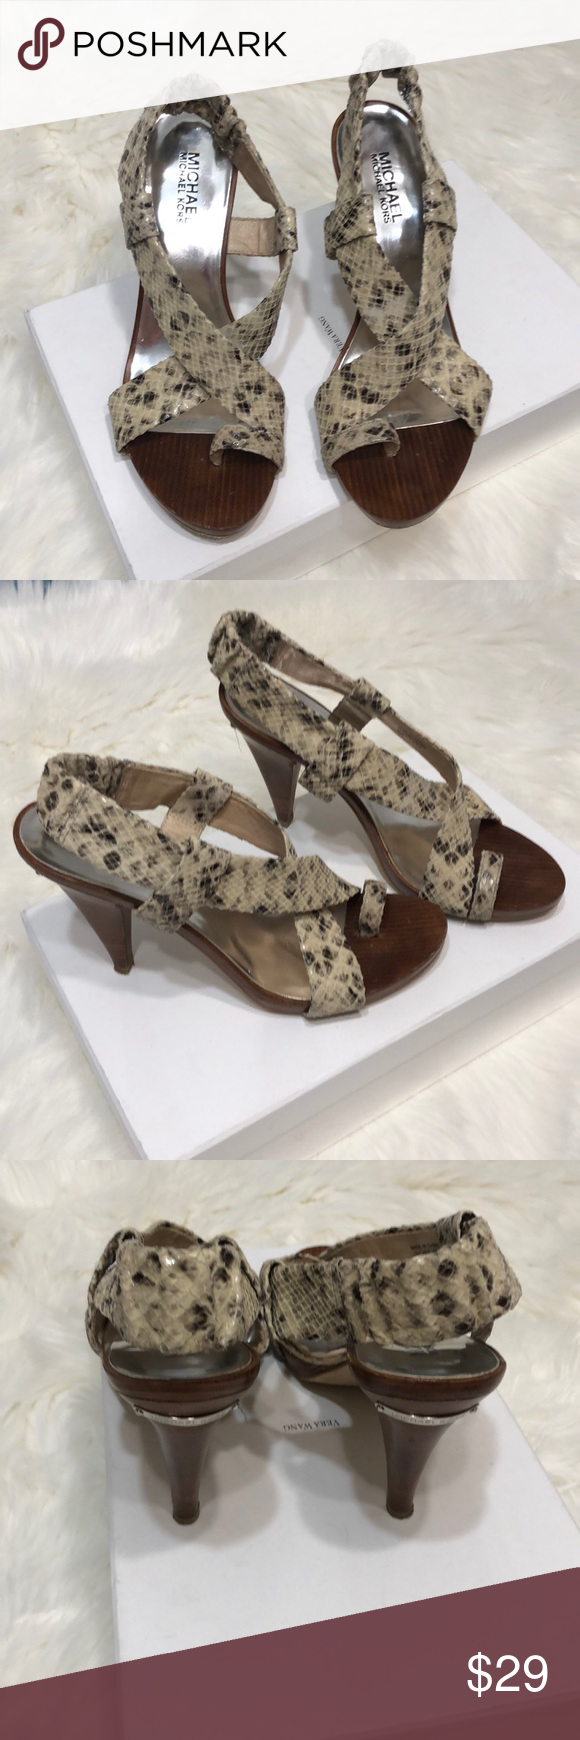 Michael Kors snake print size 8 sandals Michael Kors snake print size 8 sandals 4 in  Heel  5 in  Platform  Leather upper Rubber sole Lots of life left in these beauties  Signs of wear shown on the bo is part of Fashion -